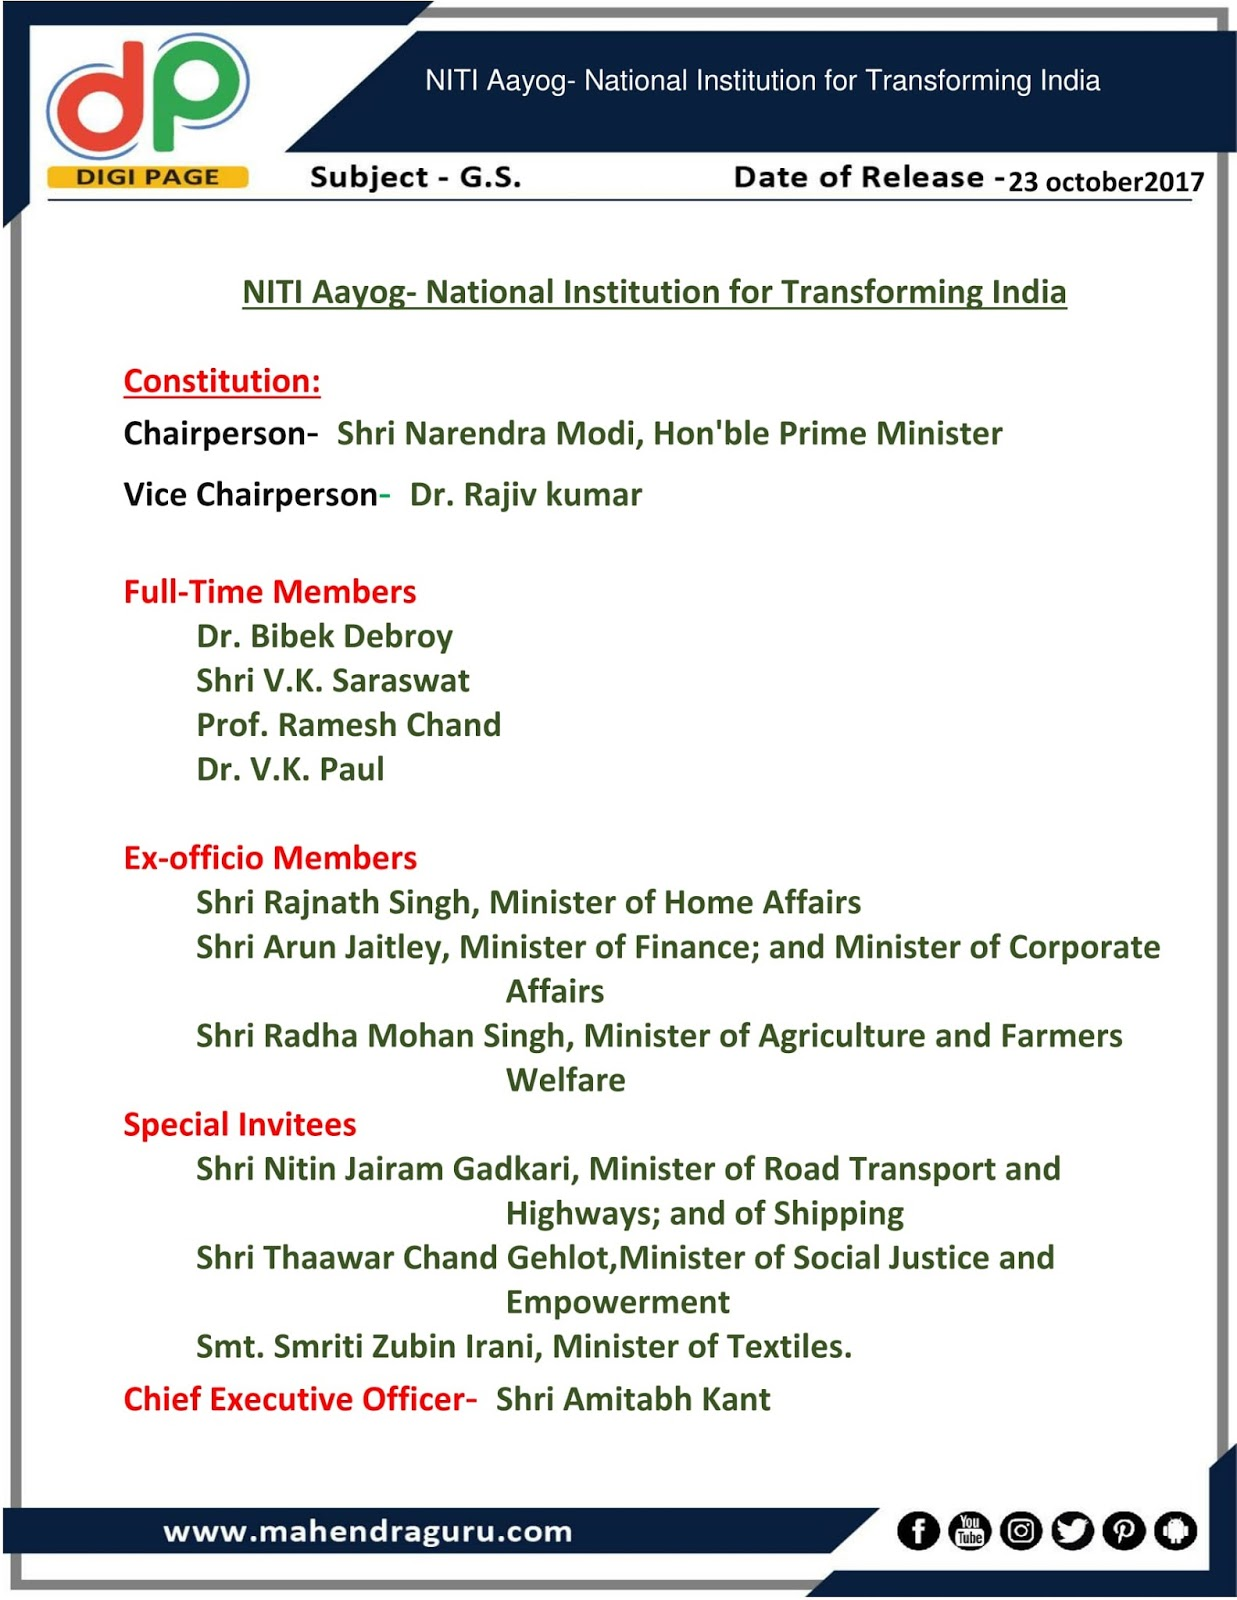 national institution for transforming india niti National institute for transforming india recruitment 2018: – niti aayog has issued a notification for the recruitment of senior advisor/advisor vacancy at 08 posts interested candidates may apply by 45 days other details like age limit, educational qualification, selection process, application fee and how to apply are given below.